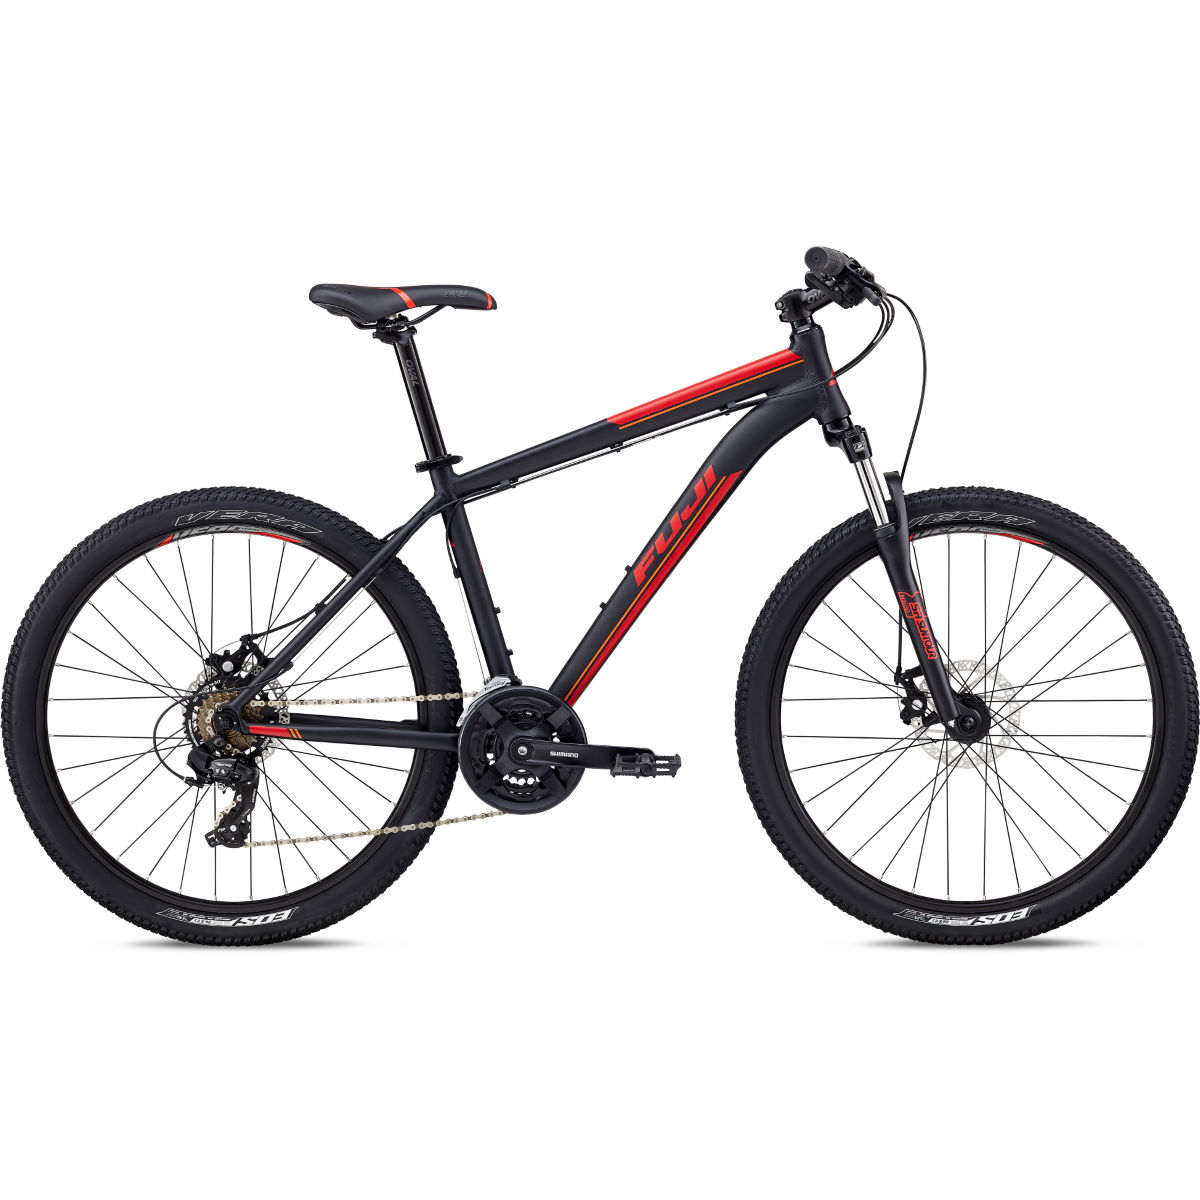 VTT semi-rigide Fuji Nevada 26 1.9 - 43cm(17'') Stock Bike